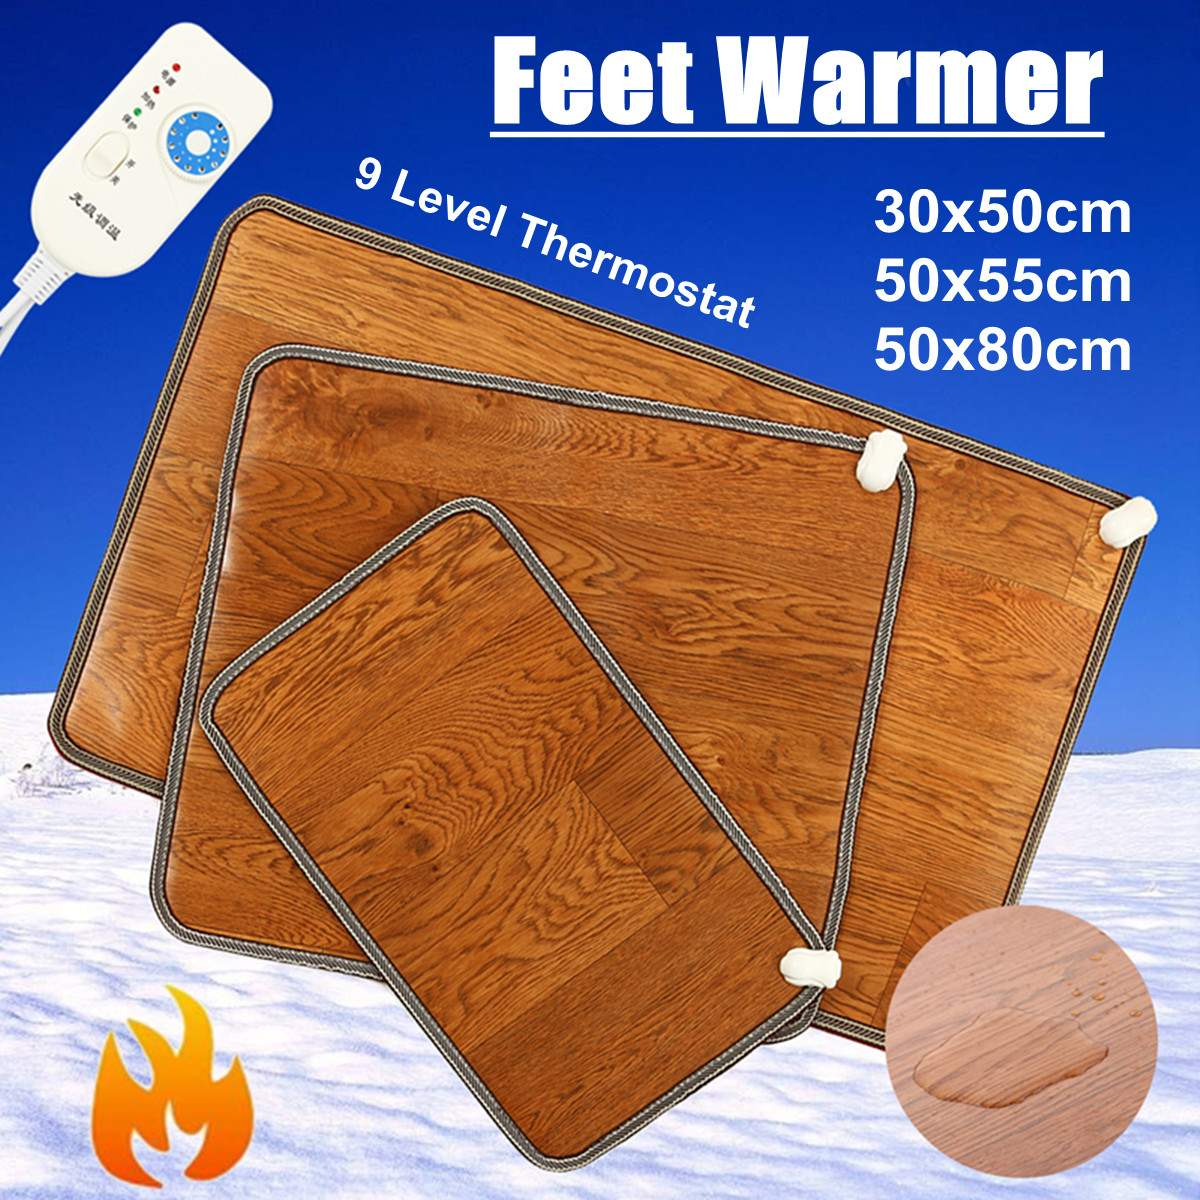 3 Sizes Winter Heating Foot Mat Office home Electric Heating Pad Warm Feet Thermostat Carpet Leather Household Warming Tools